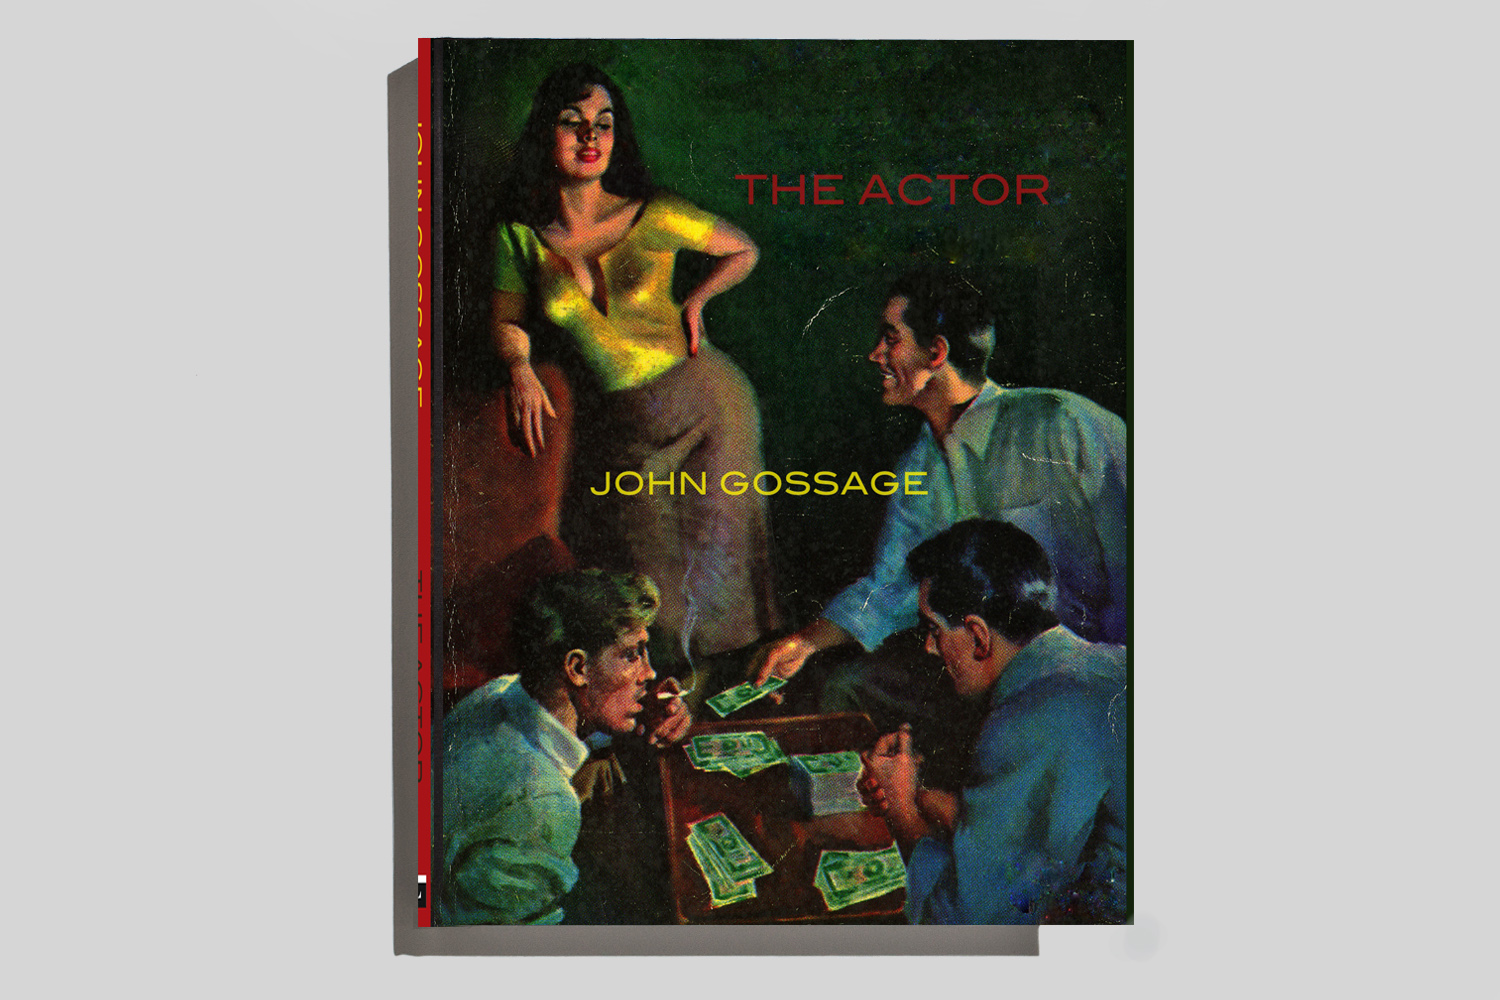 The Actor by John Gossage, selected by Jeffery Ladd, photographer, writer and publisher of Errata Editions